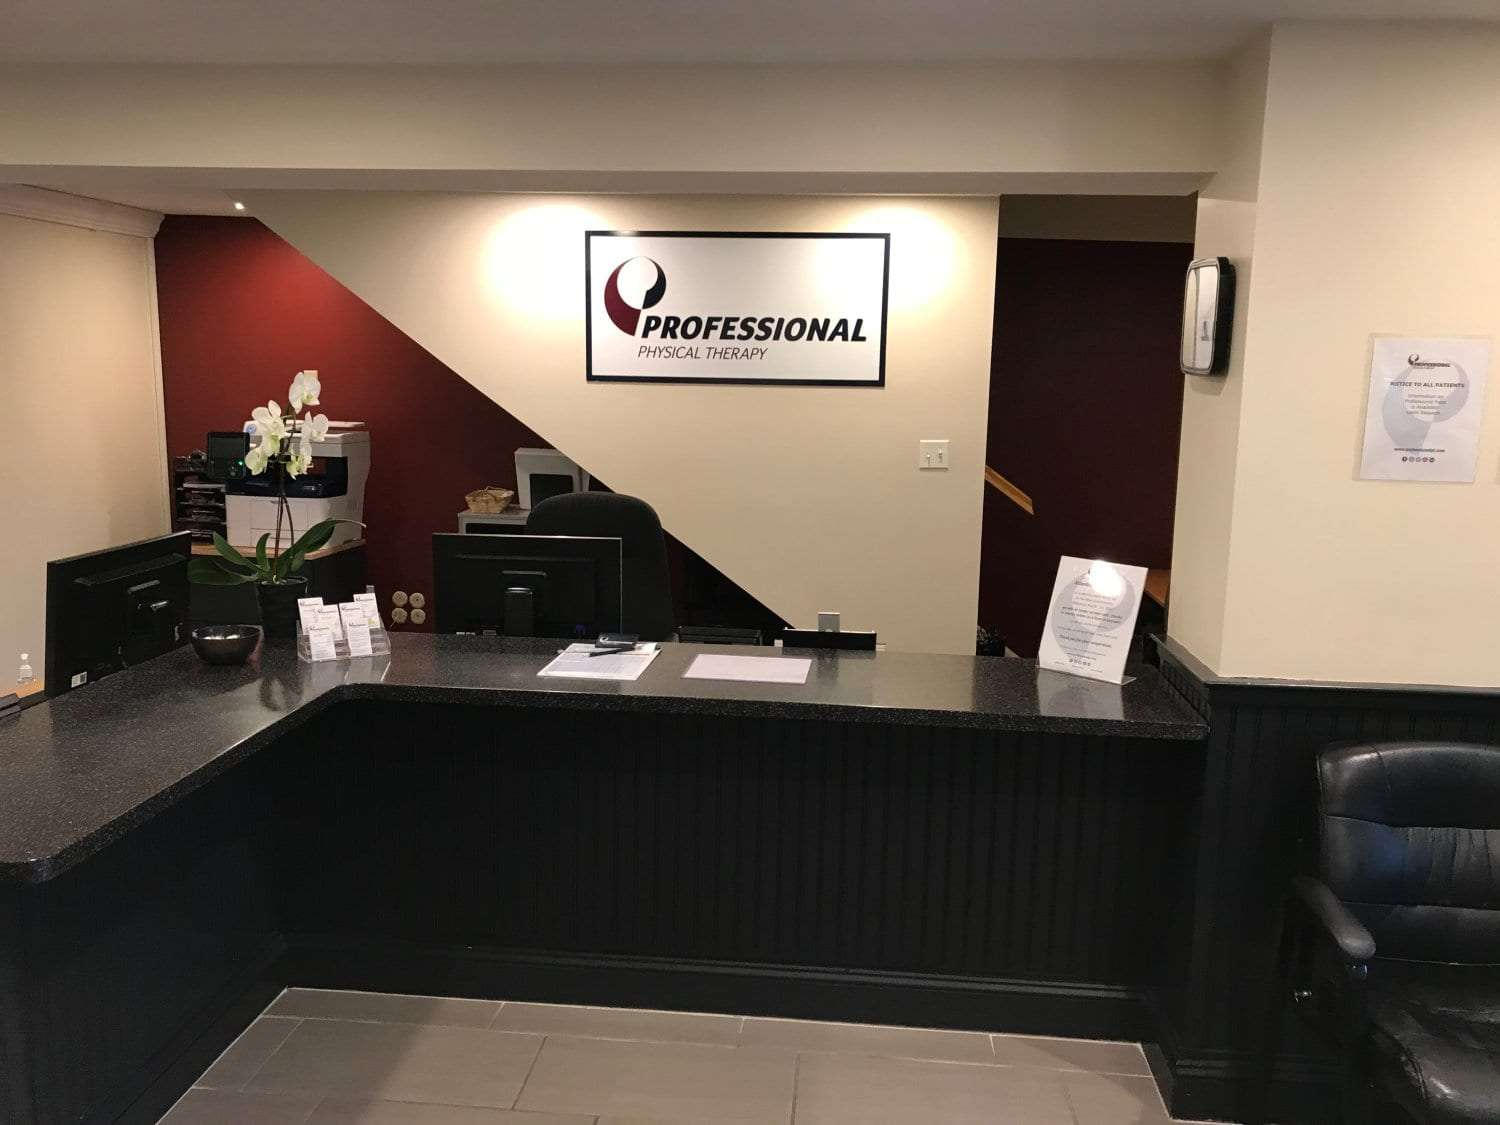 An image of the front desk at our physical therapy clinic in Cliffside Park, New Jersey.